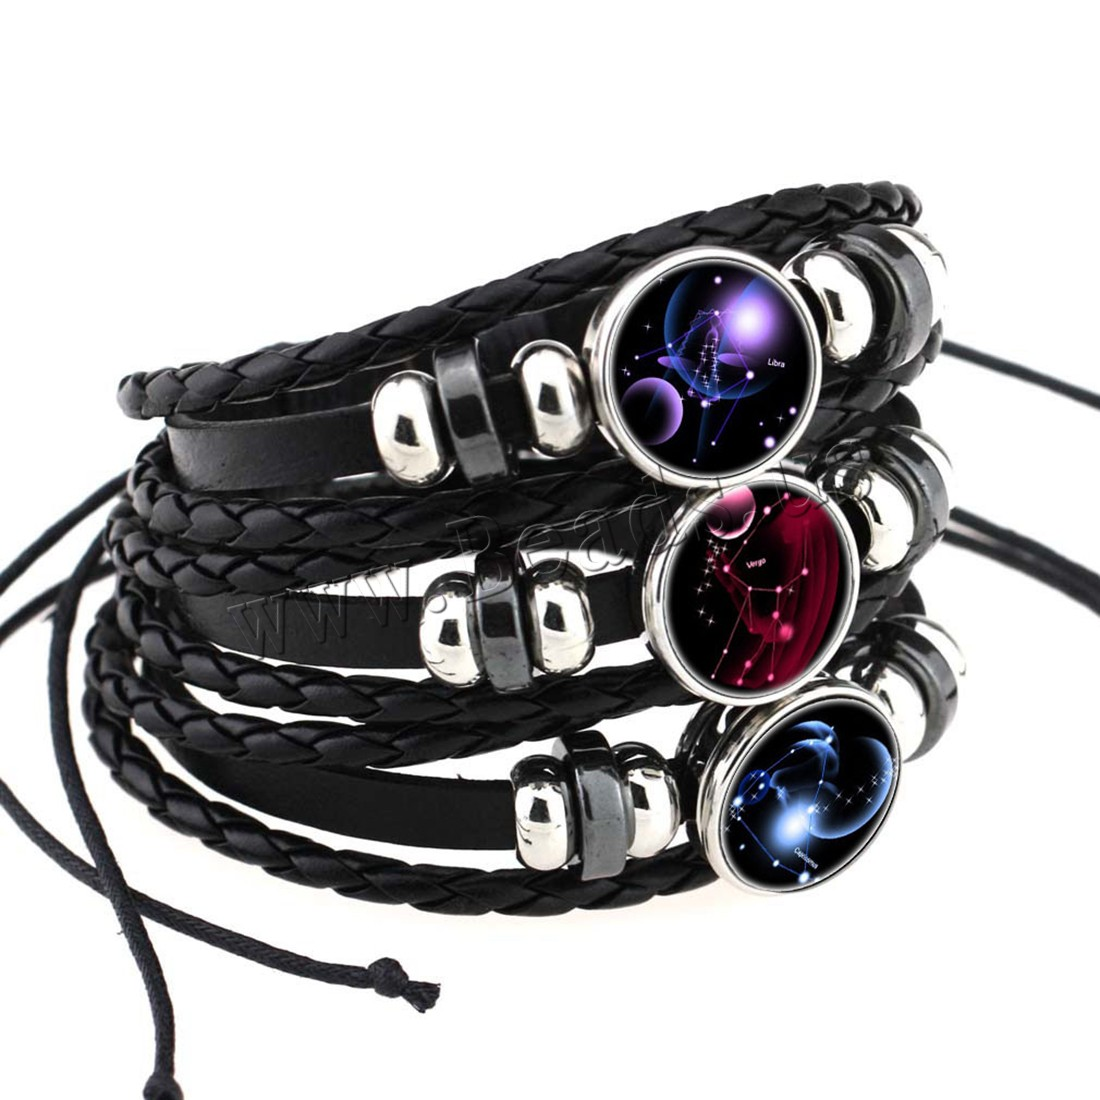 Buy Unisex Bracelet Cowhide Paper & Glass & Zinc Alloy 2.5inch extender chain plated time gem jewelry & constellation symbols & adjustable & different designs choice & 3-strand nickel lead & cadmium free 18mm Sold Per Approx 7.5-11 Inch Strand